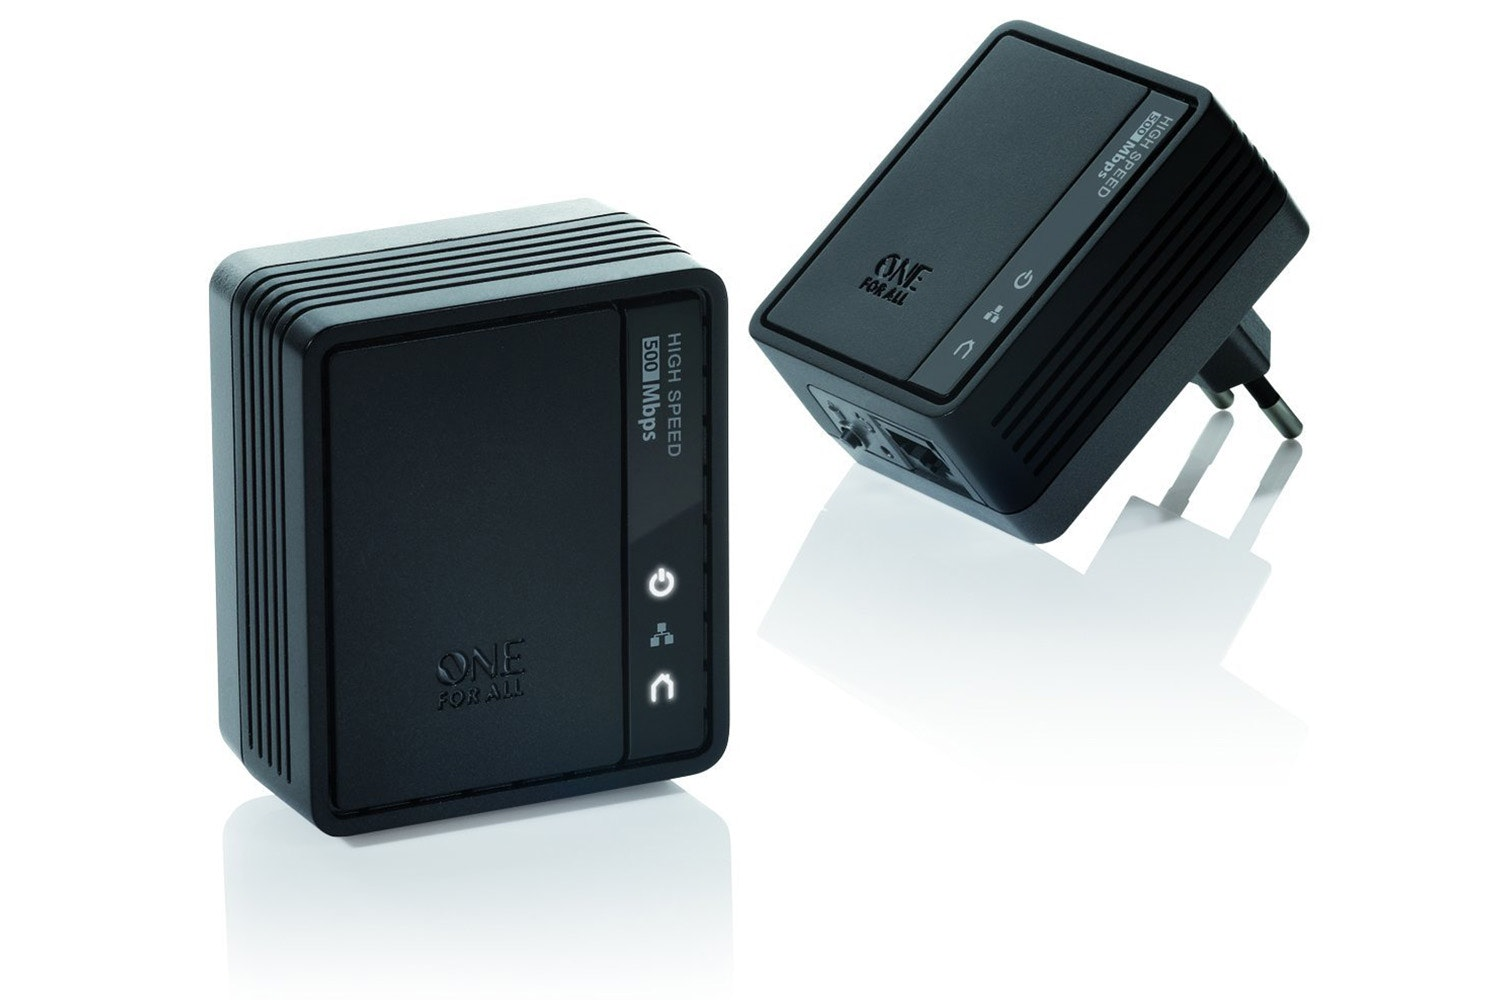 One For All SV 2020 Internet to TV Link Powerline Adapter | Black